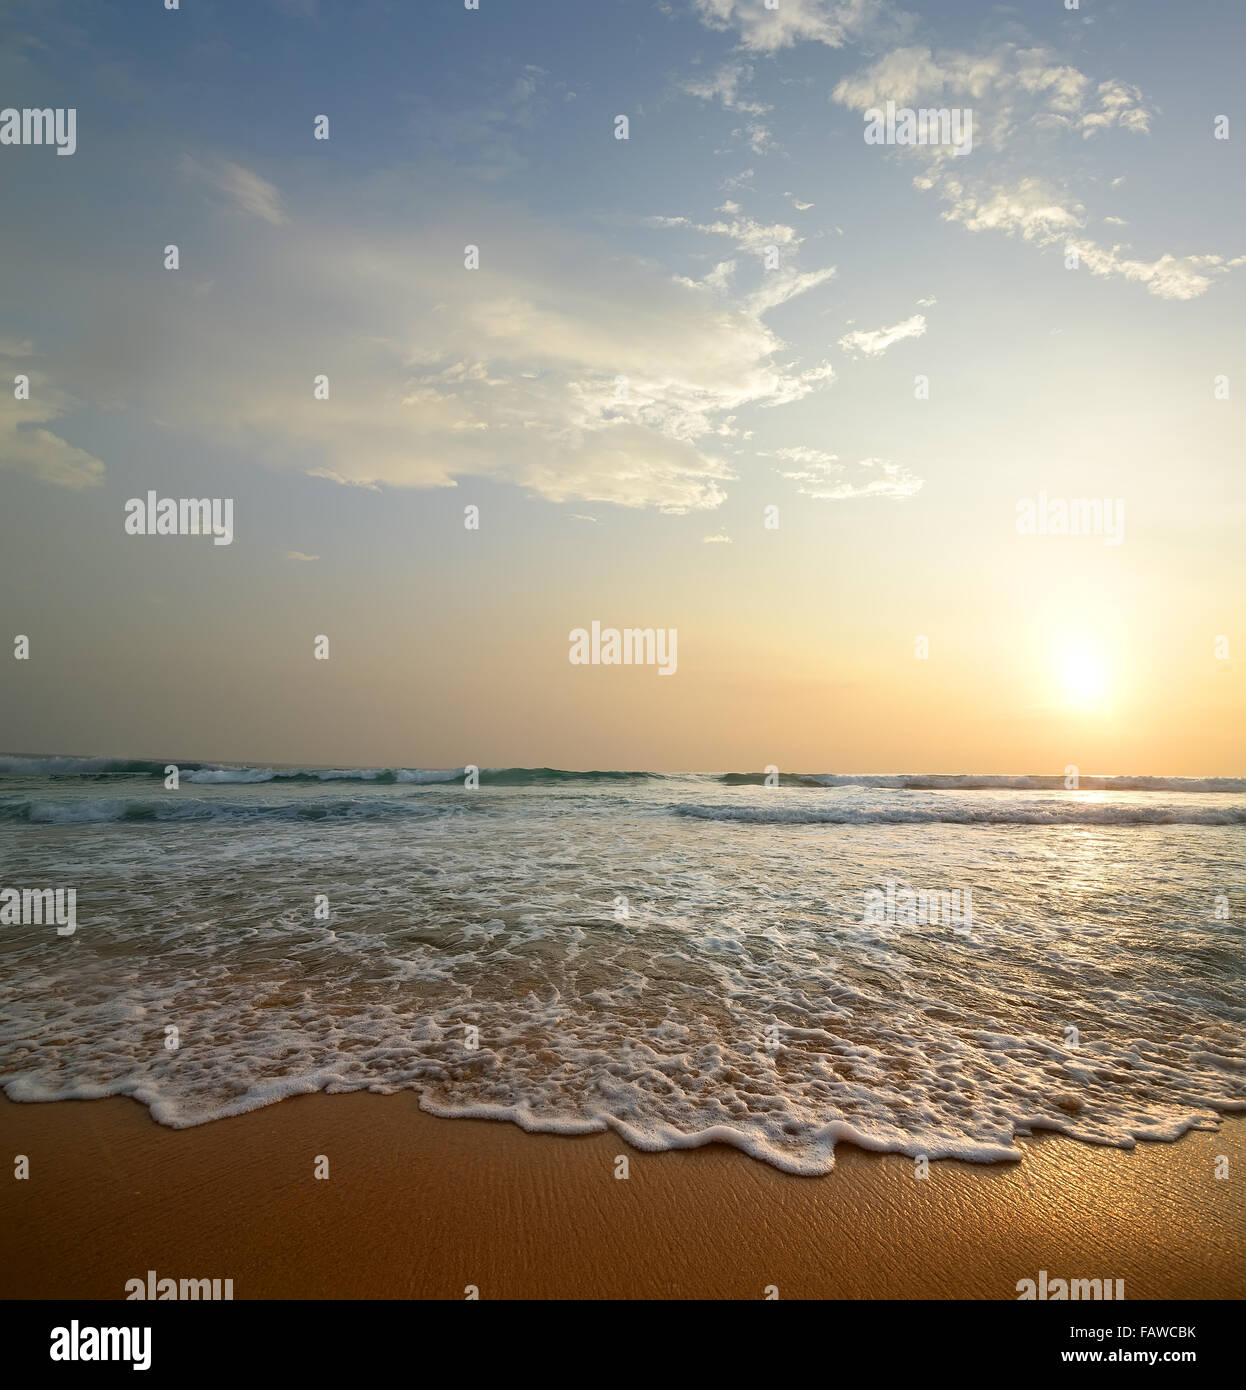 Waves with foam on a sandy coast of the ocean - Stock Image